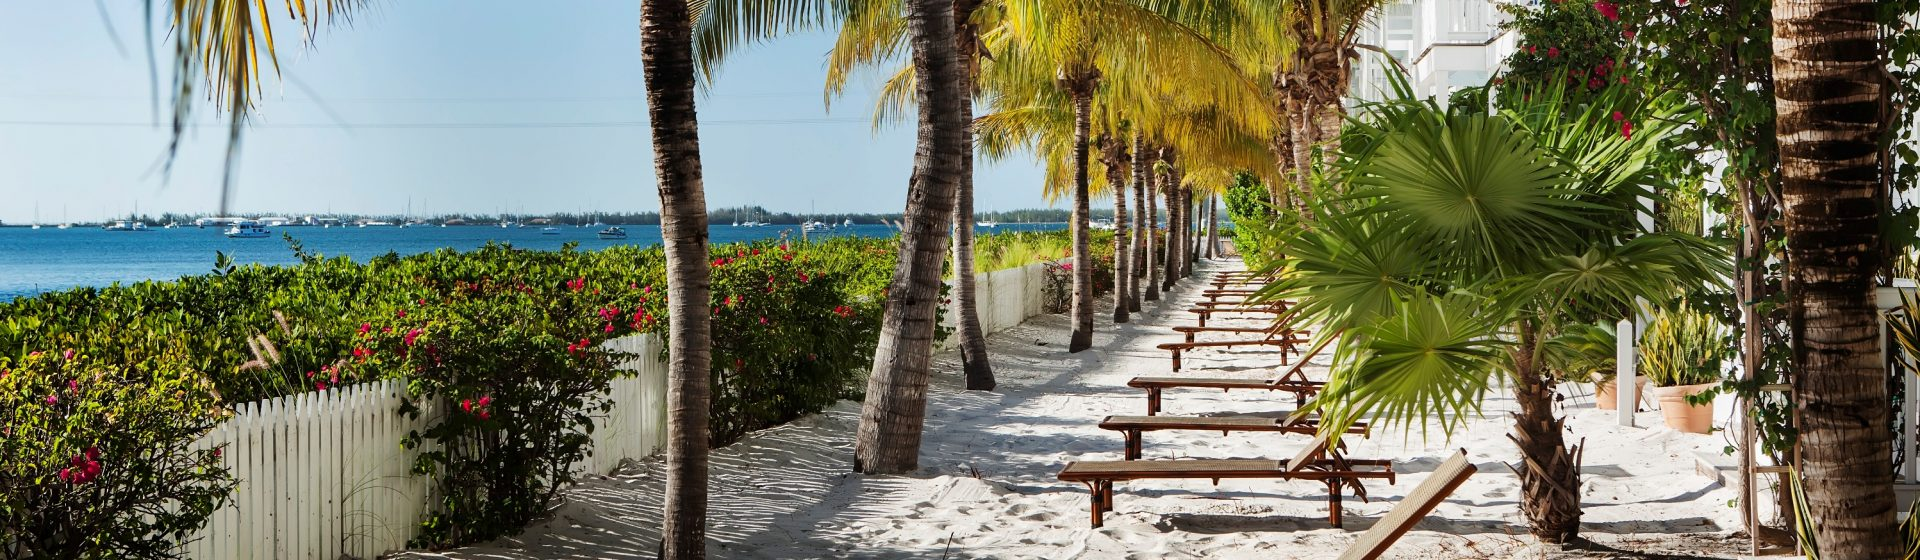 Key west vacation package key west hotel deals parrot key resort